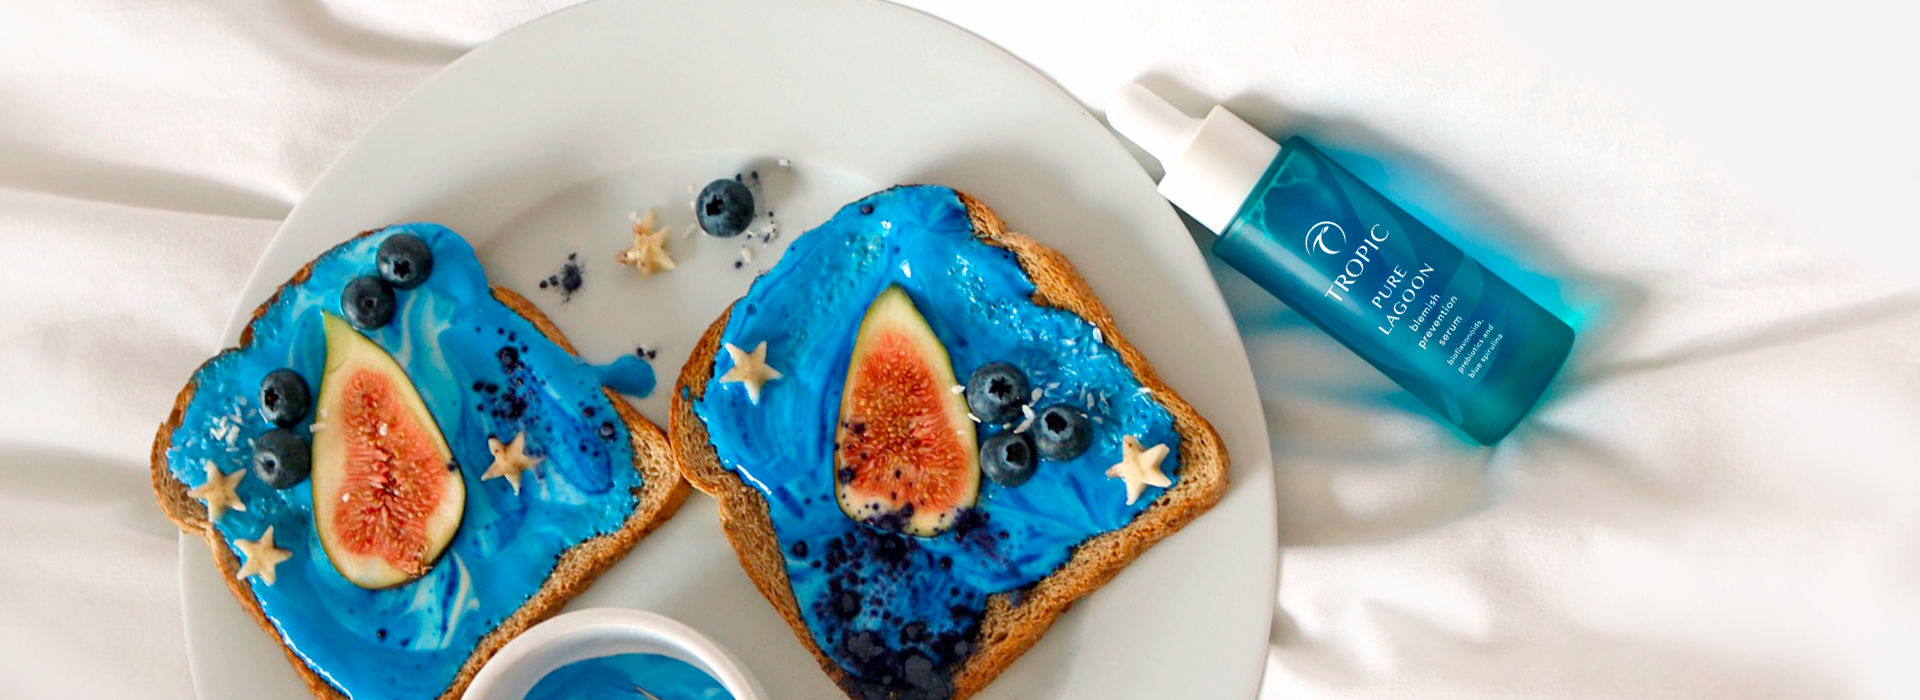 Blue Mermaid Toast Recipe